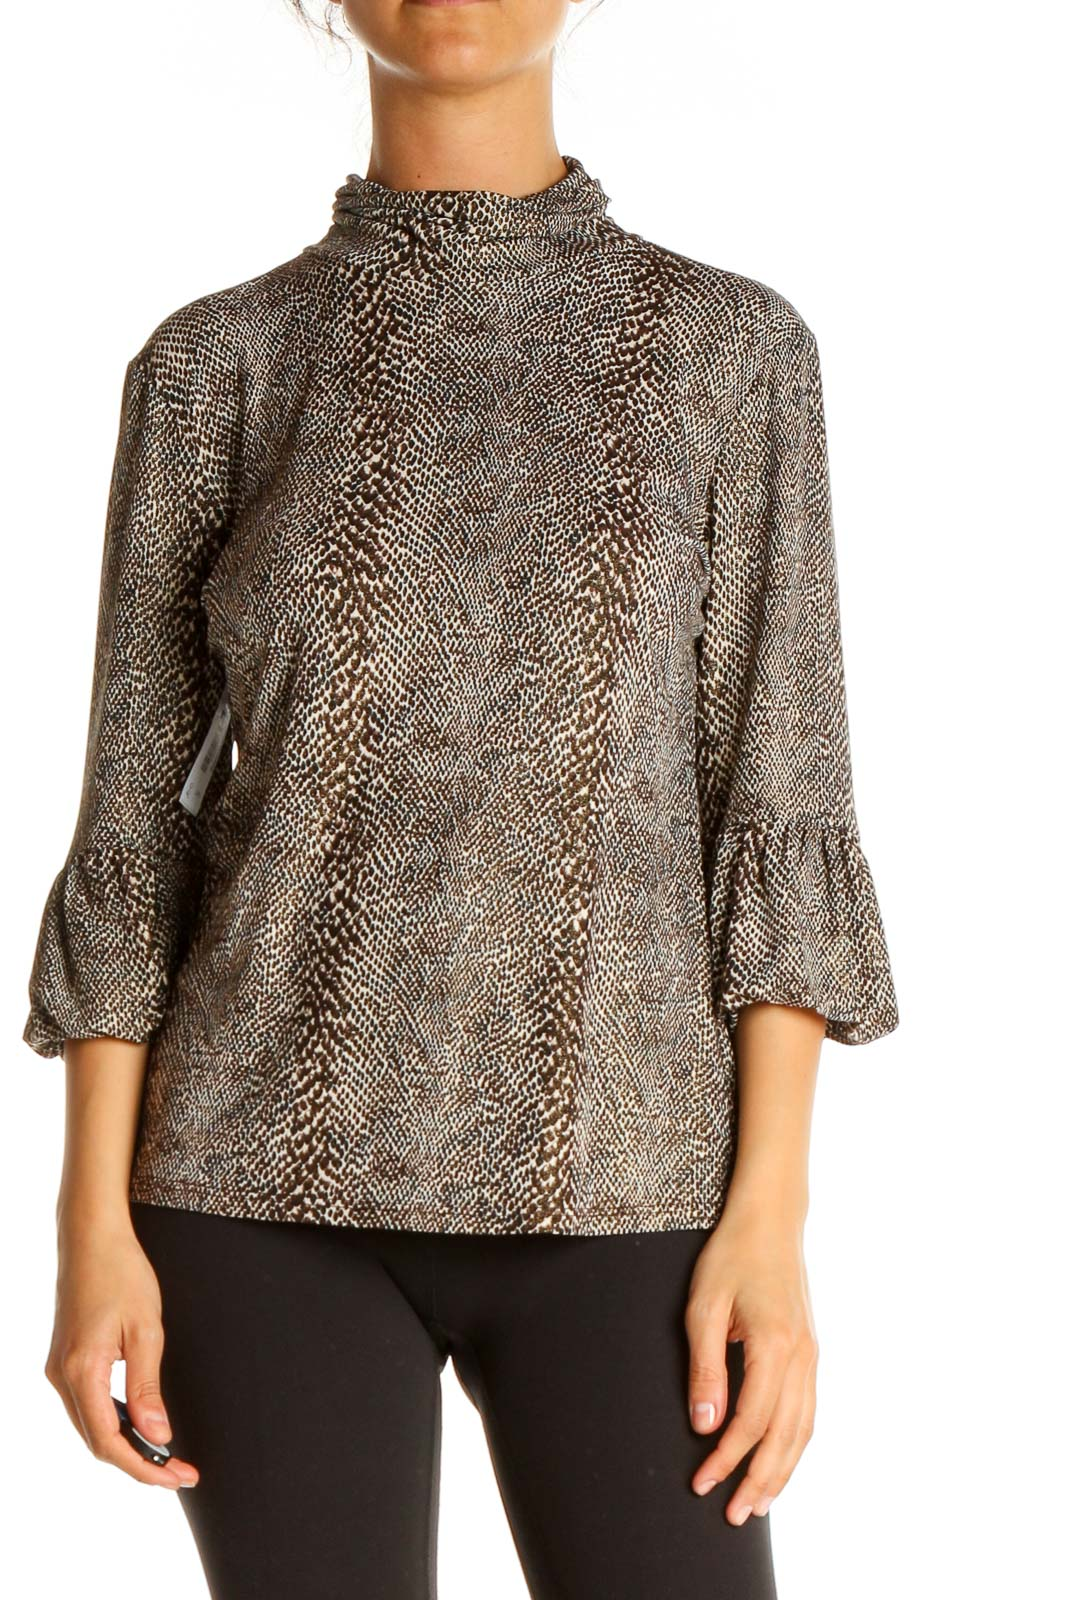 Gray Animal Print All Day Wear Top Front